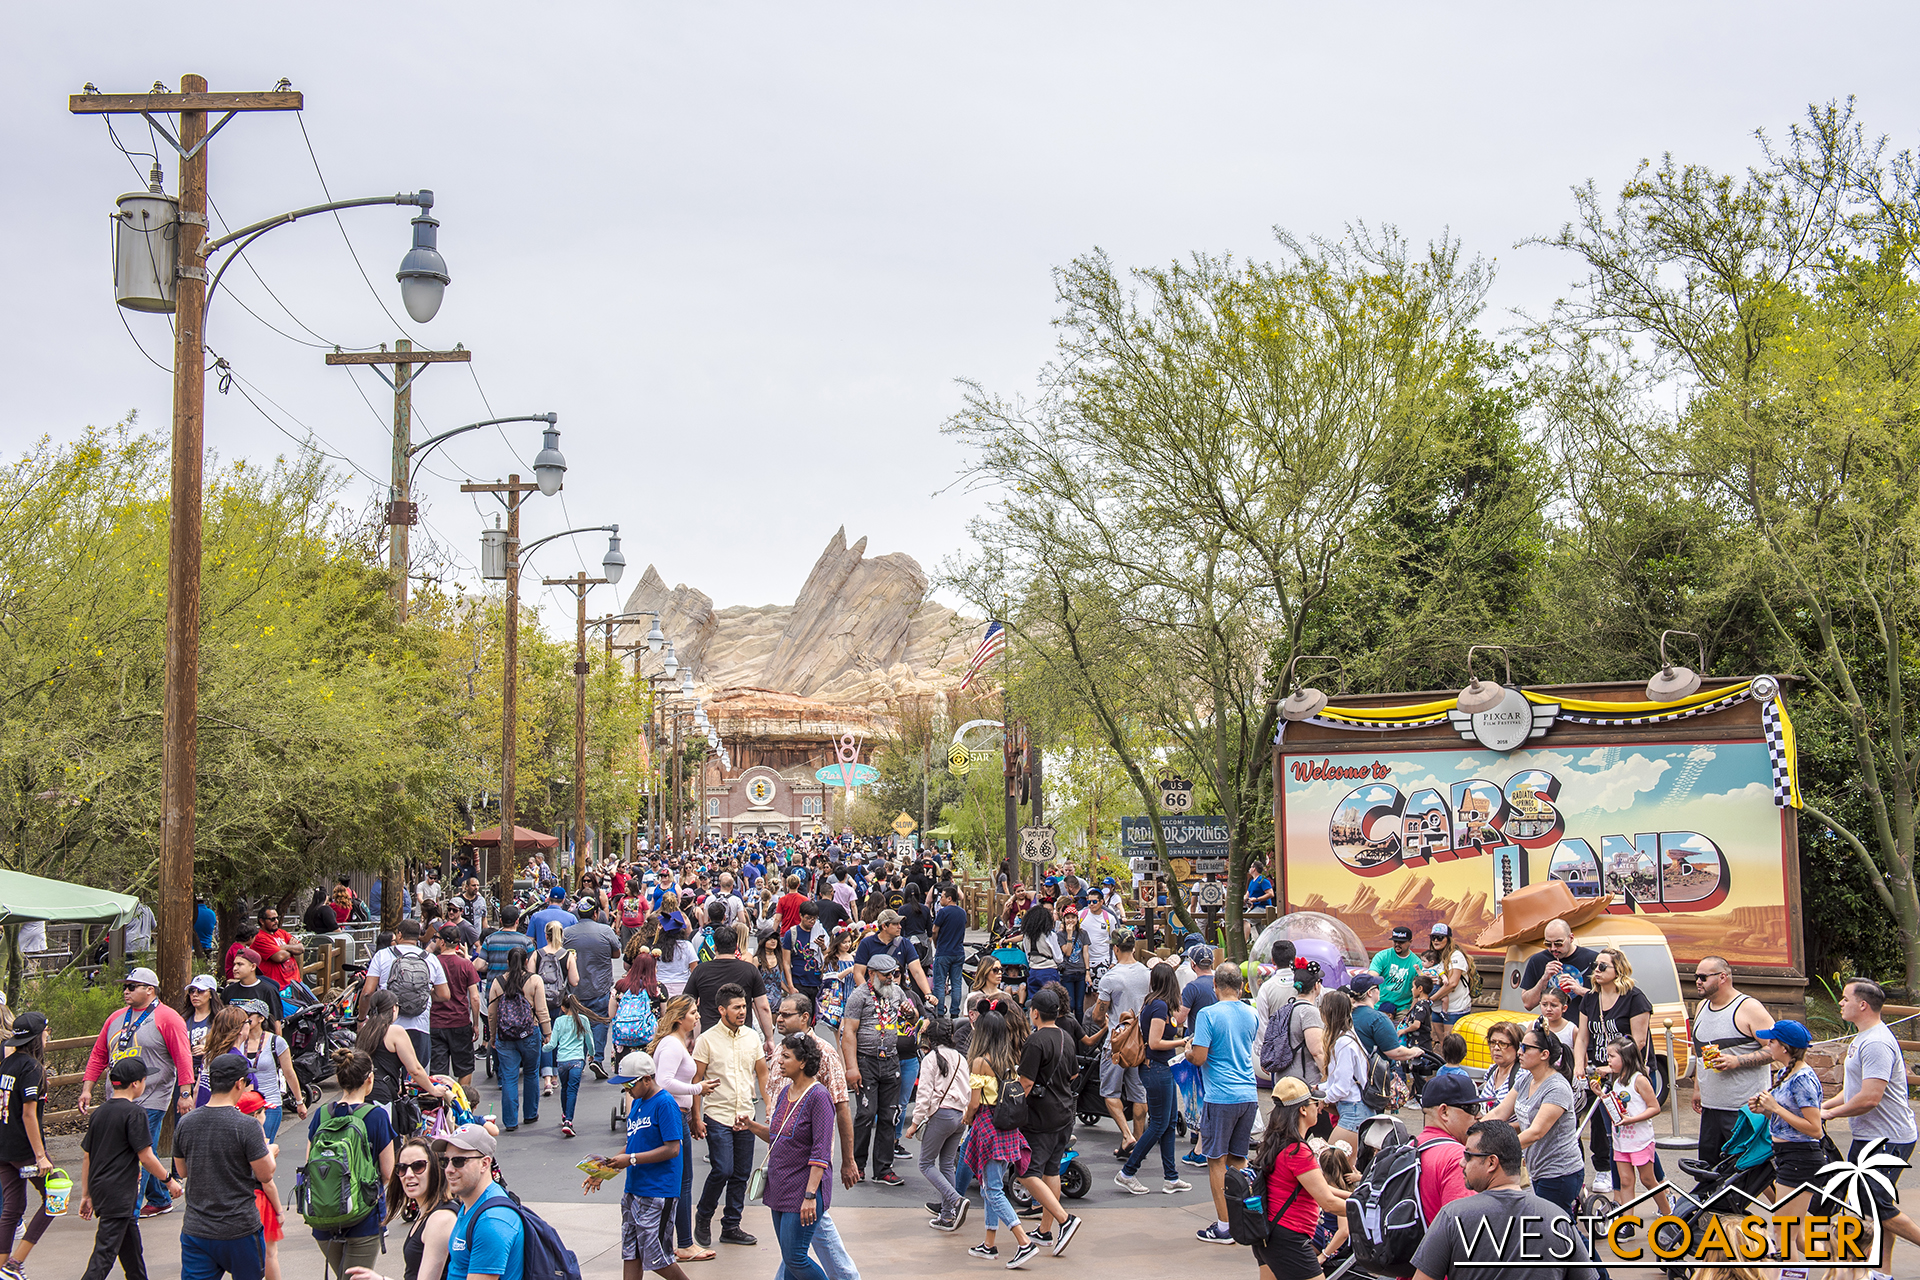 Lets move over to Cars Land.